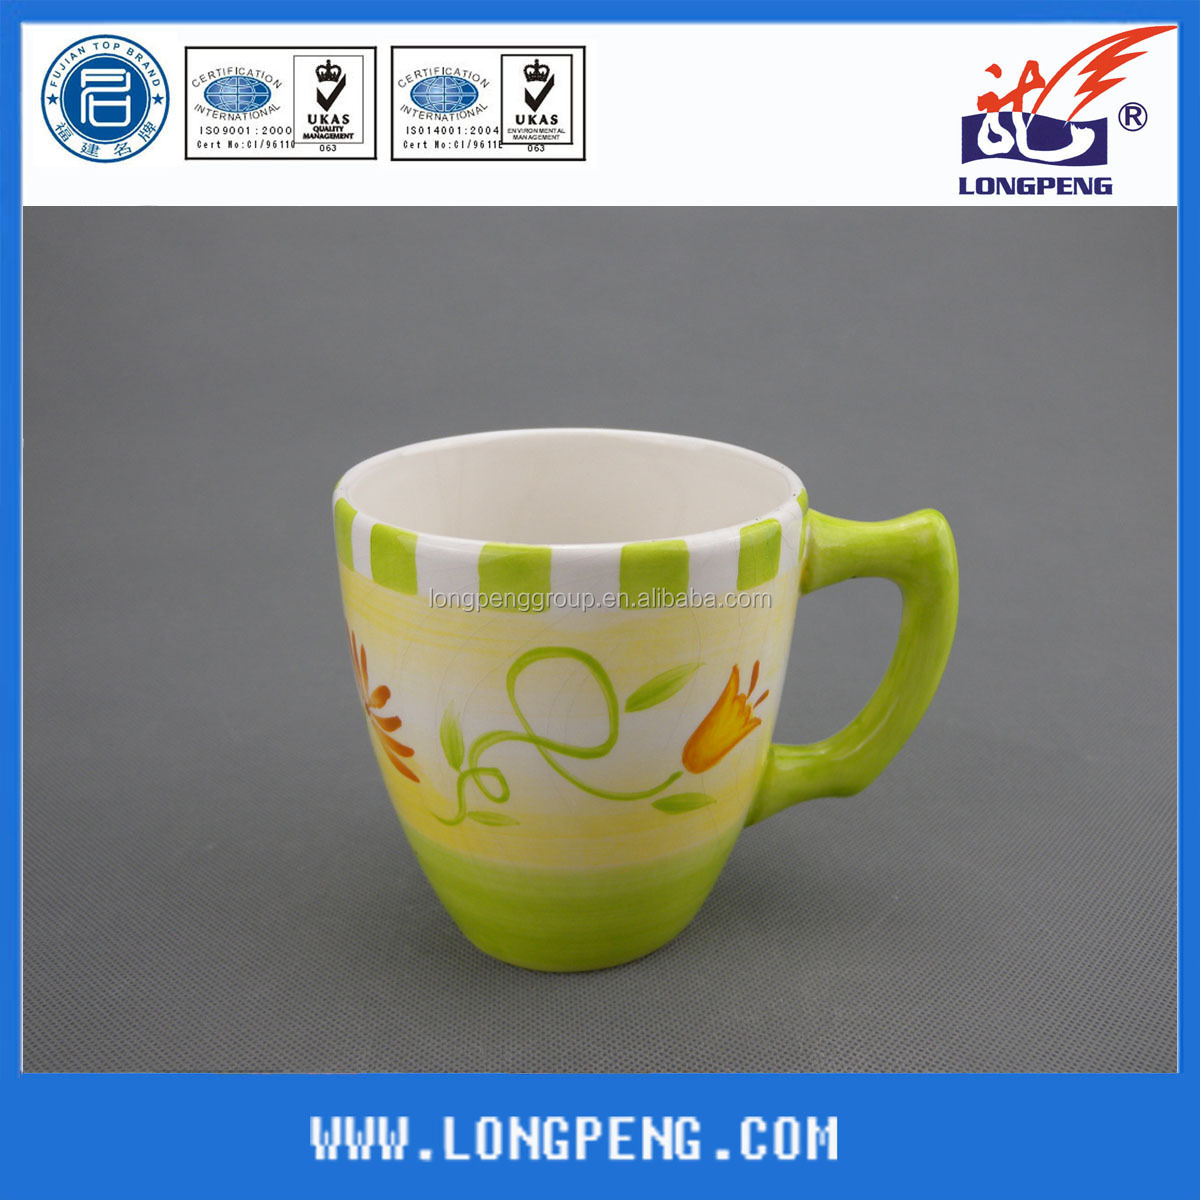 Paintable Ceramics Mug, Paintable Ceramics Mug Suppliers And Manufacturers  At Alibaba.com